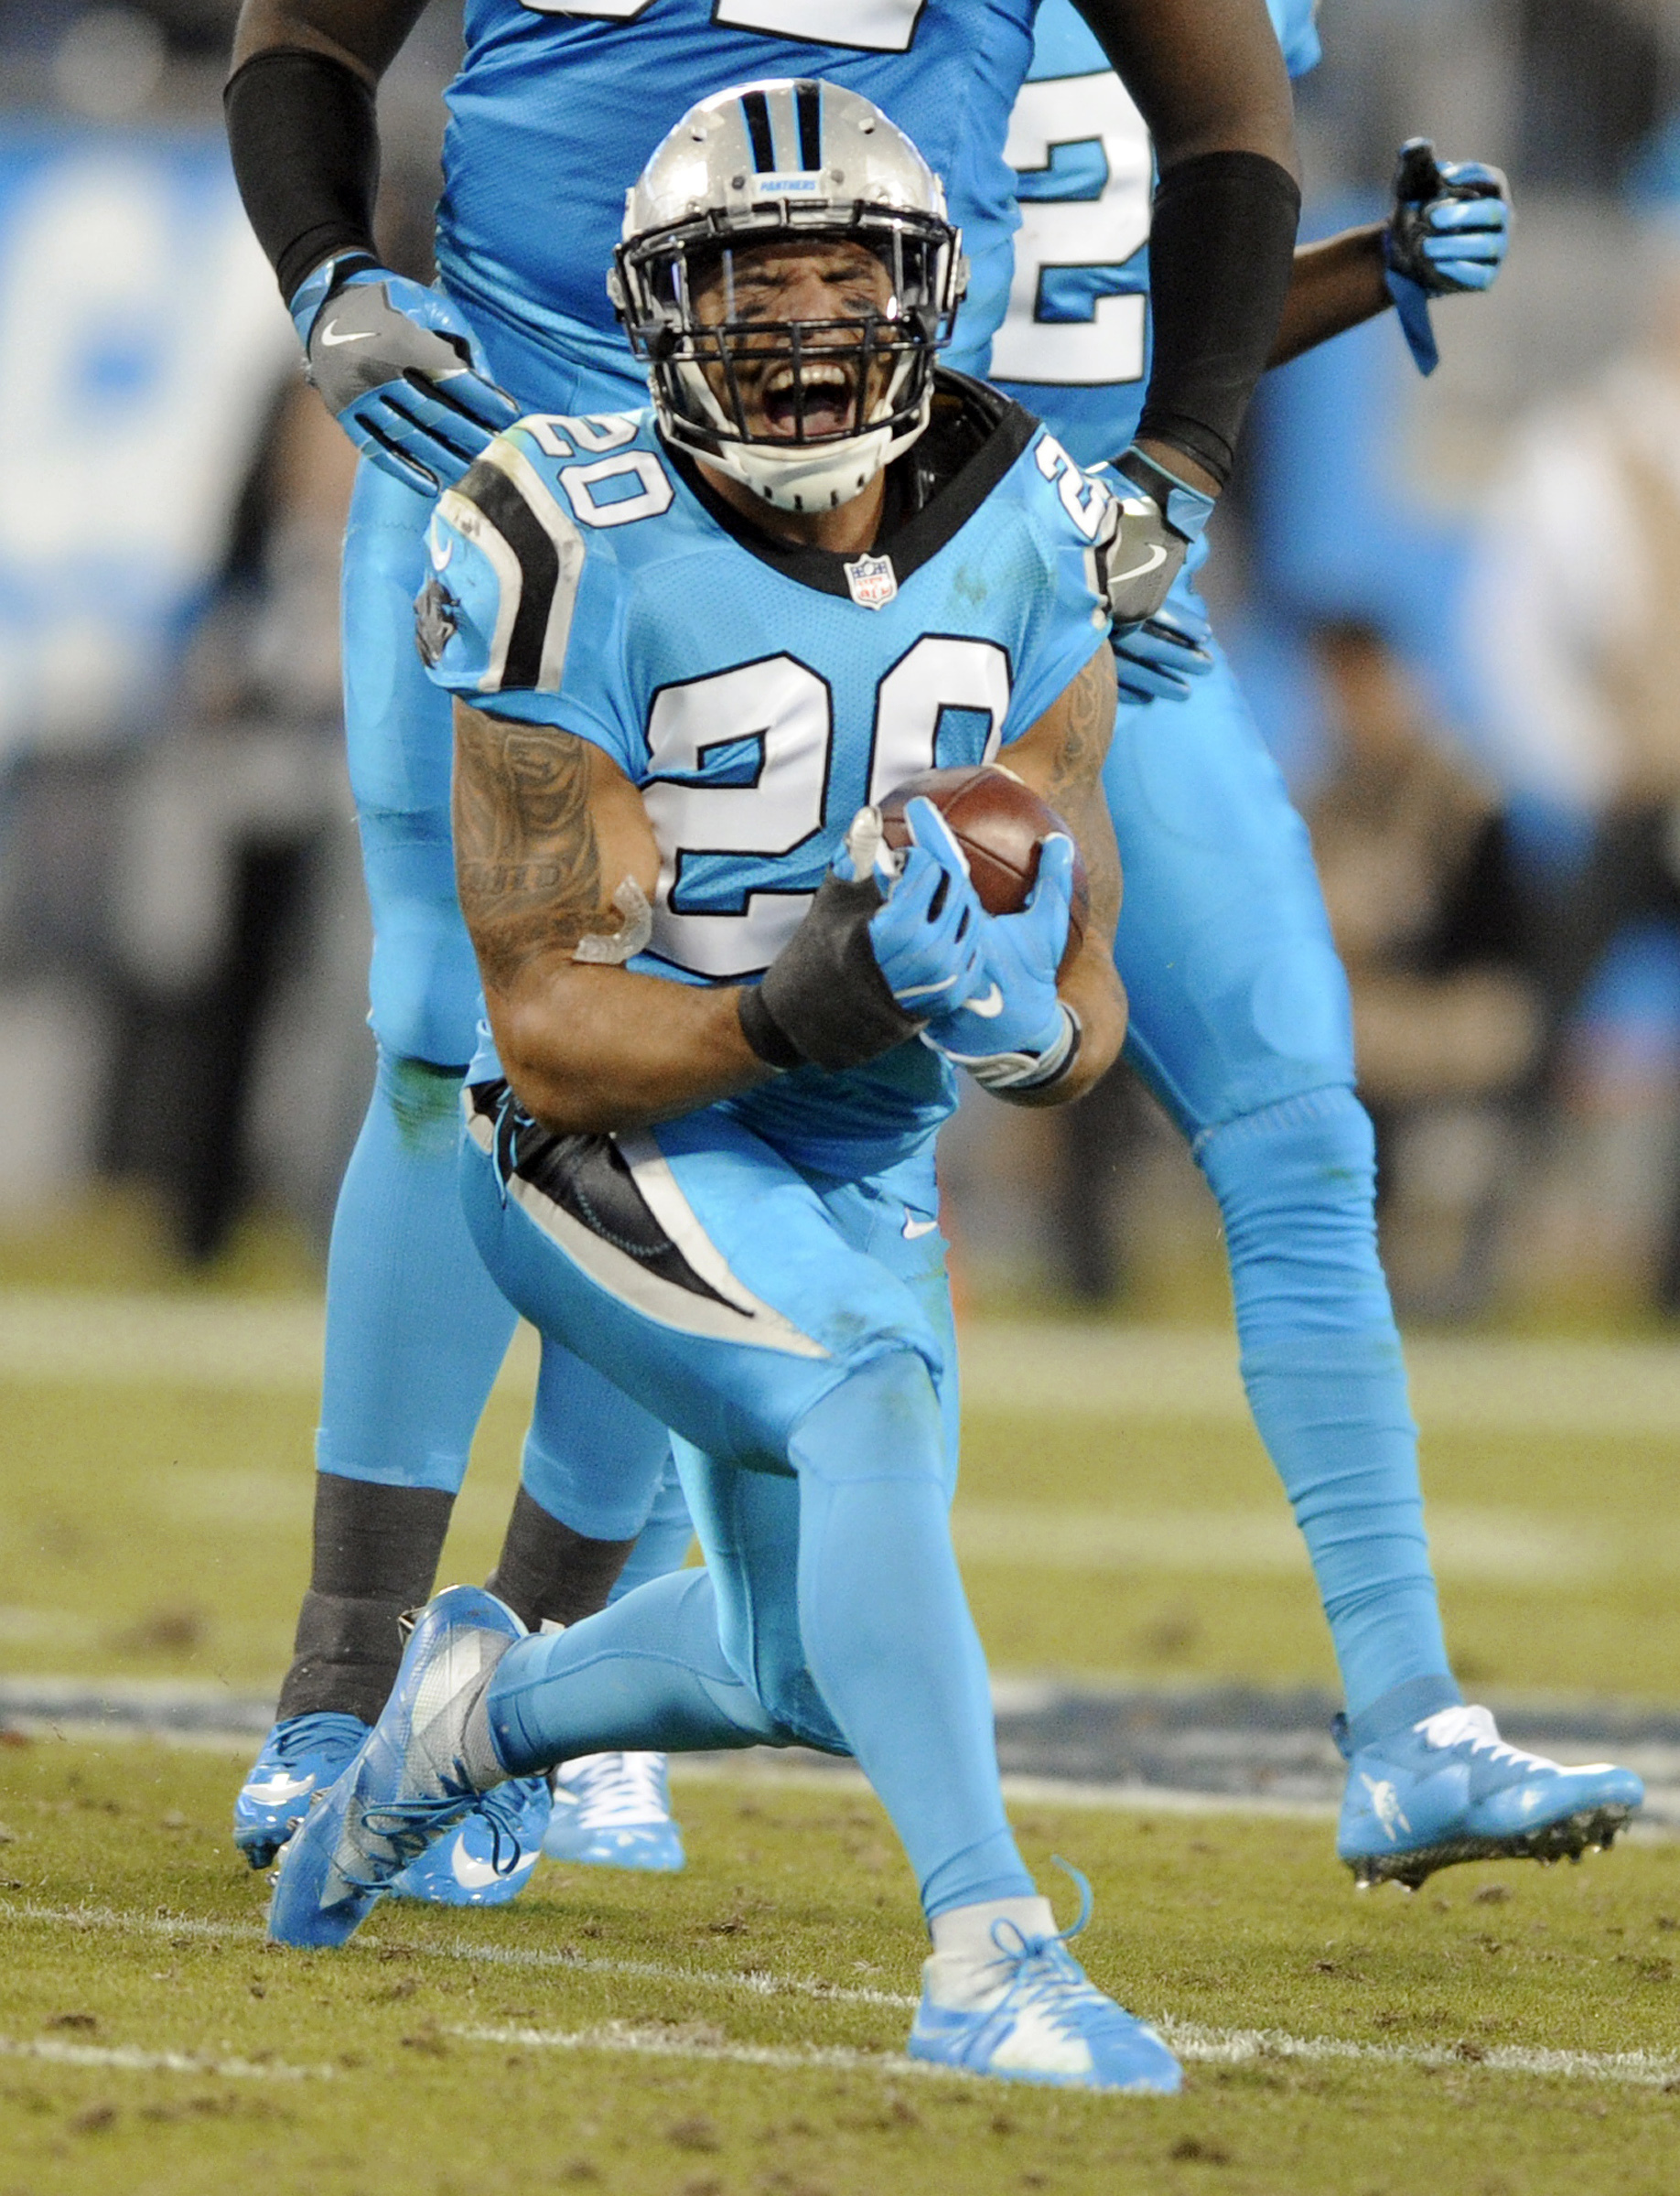 Carolina Panthers' Kurt Coleman (20) reacts to intercepting a New Orleans Saints pass in the first half of an NFL football game in Charlotte, N.C., Thursday, Nov. 17, 2016. (AP Photo/Mike McCarn)